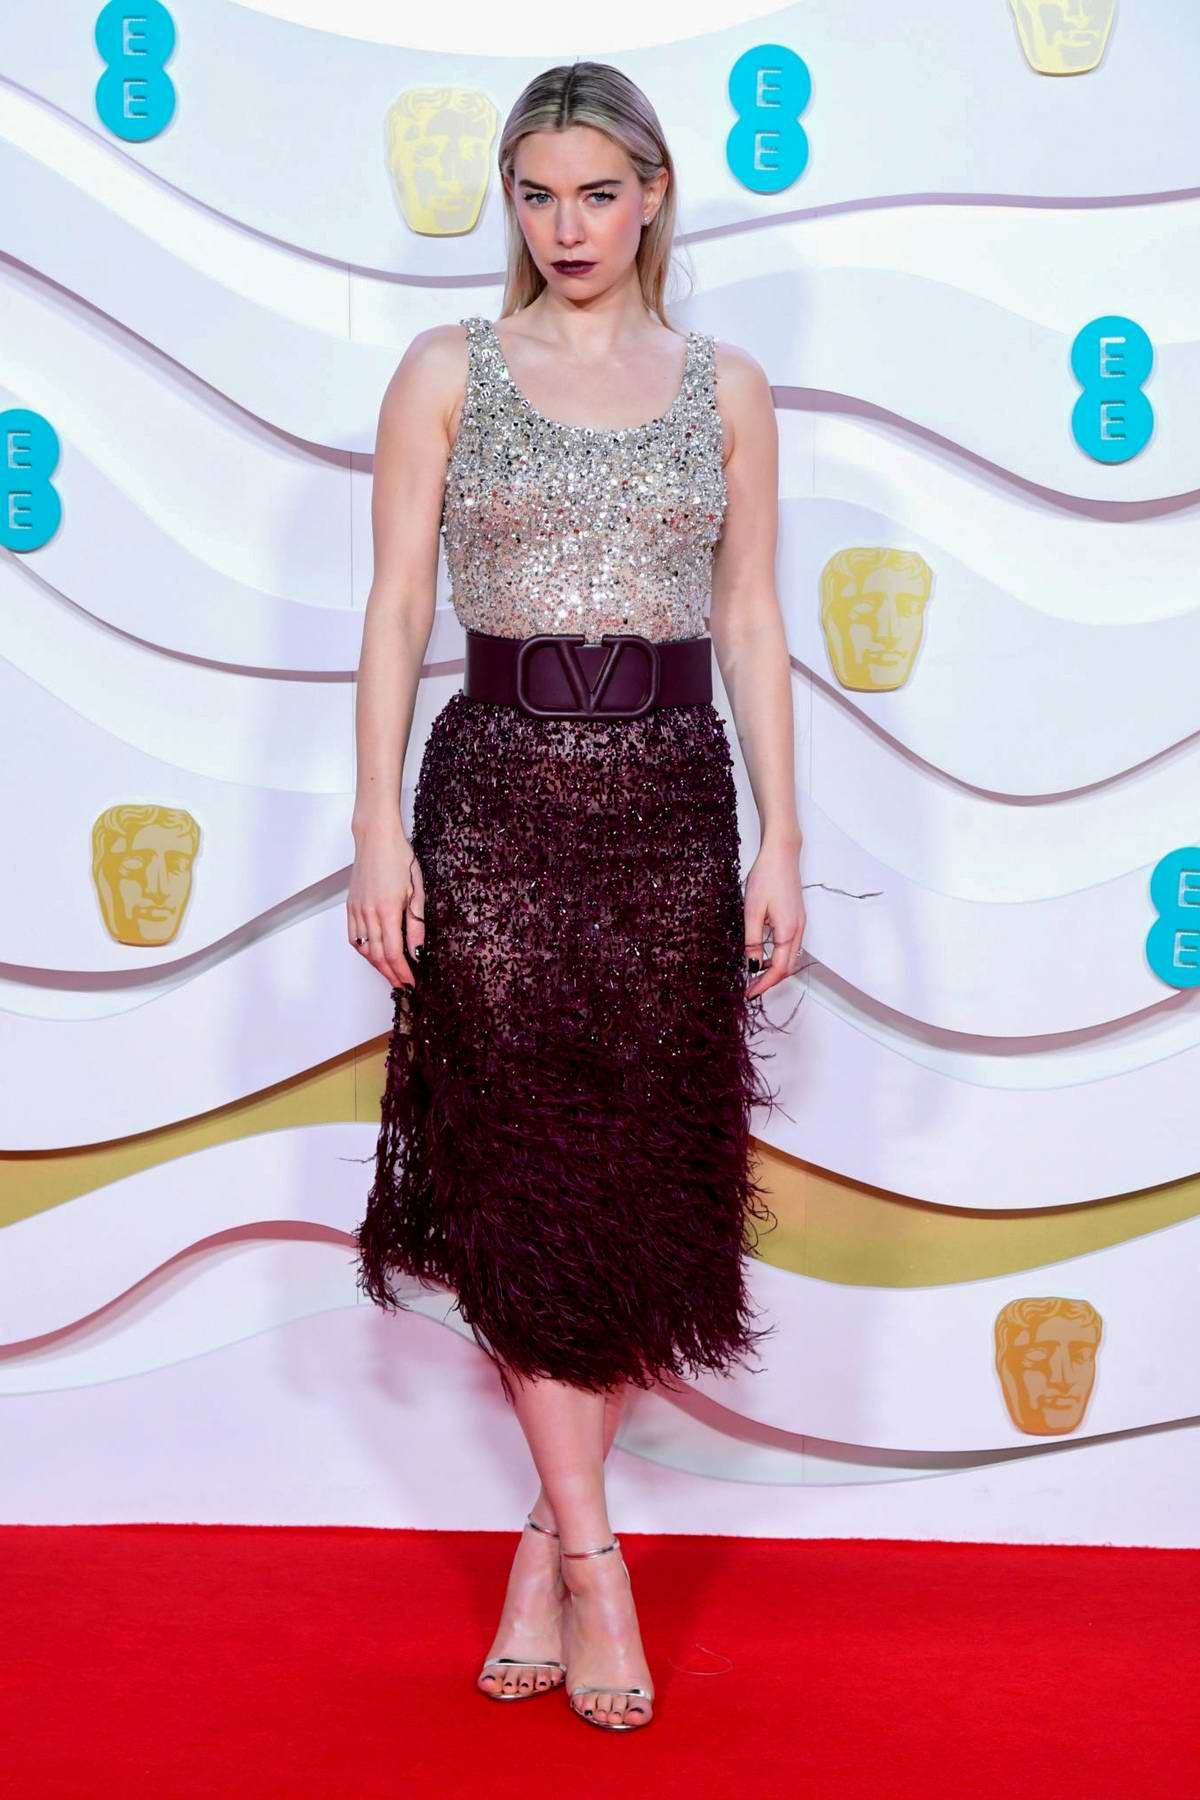 Vanessa Kirby attends the 73rd EE British Academy Film Awards at Royal Albert Hall in London, UK